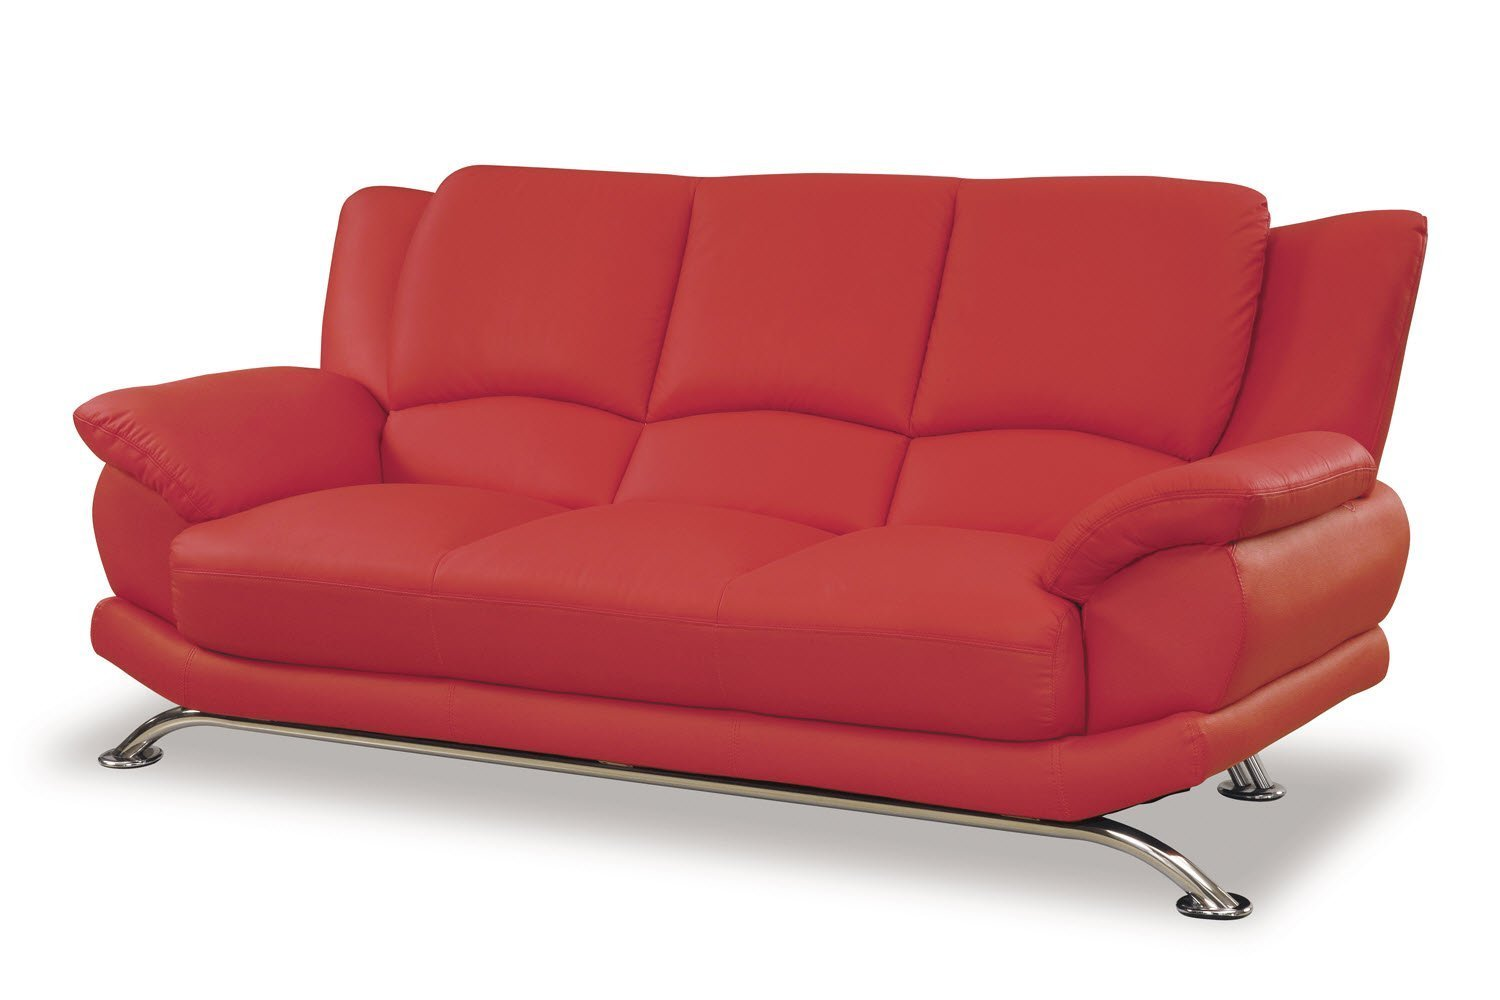 baxton studio dobson leather modern sectional sofa into bed red couch home furniture design